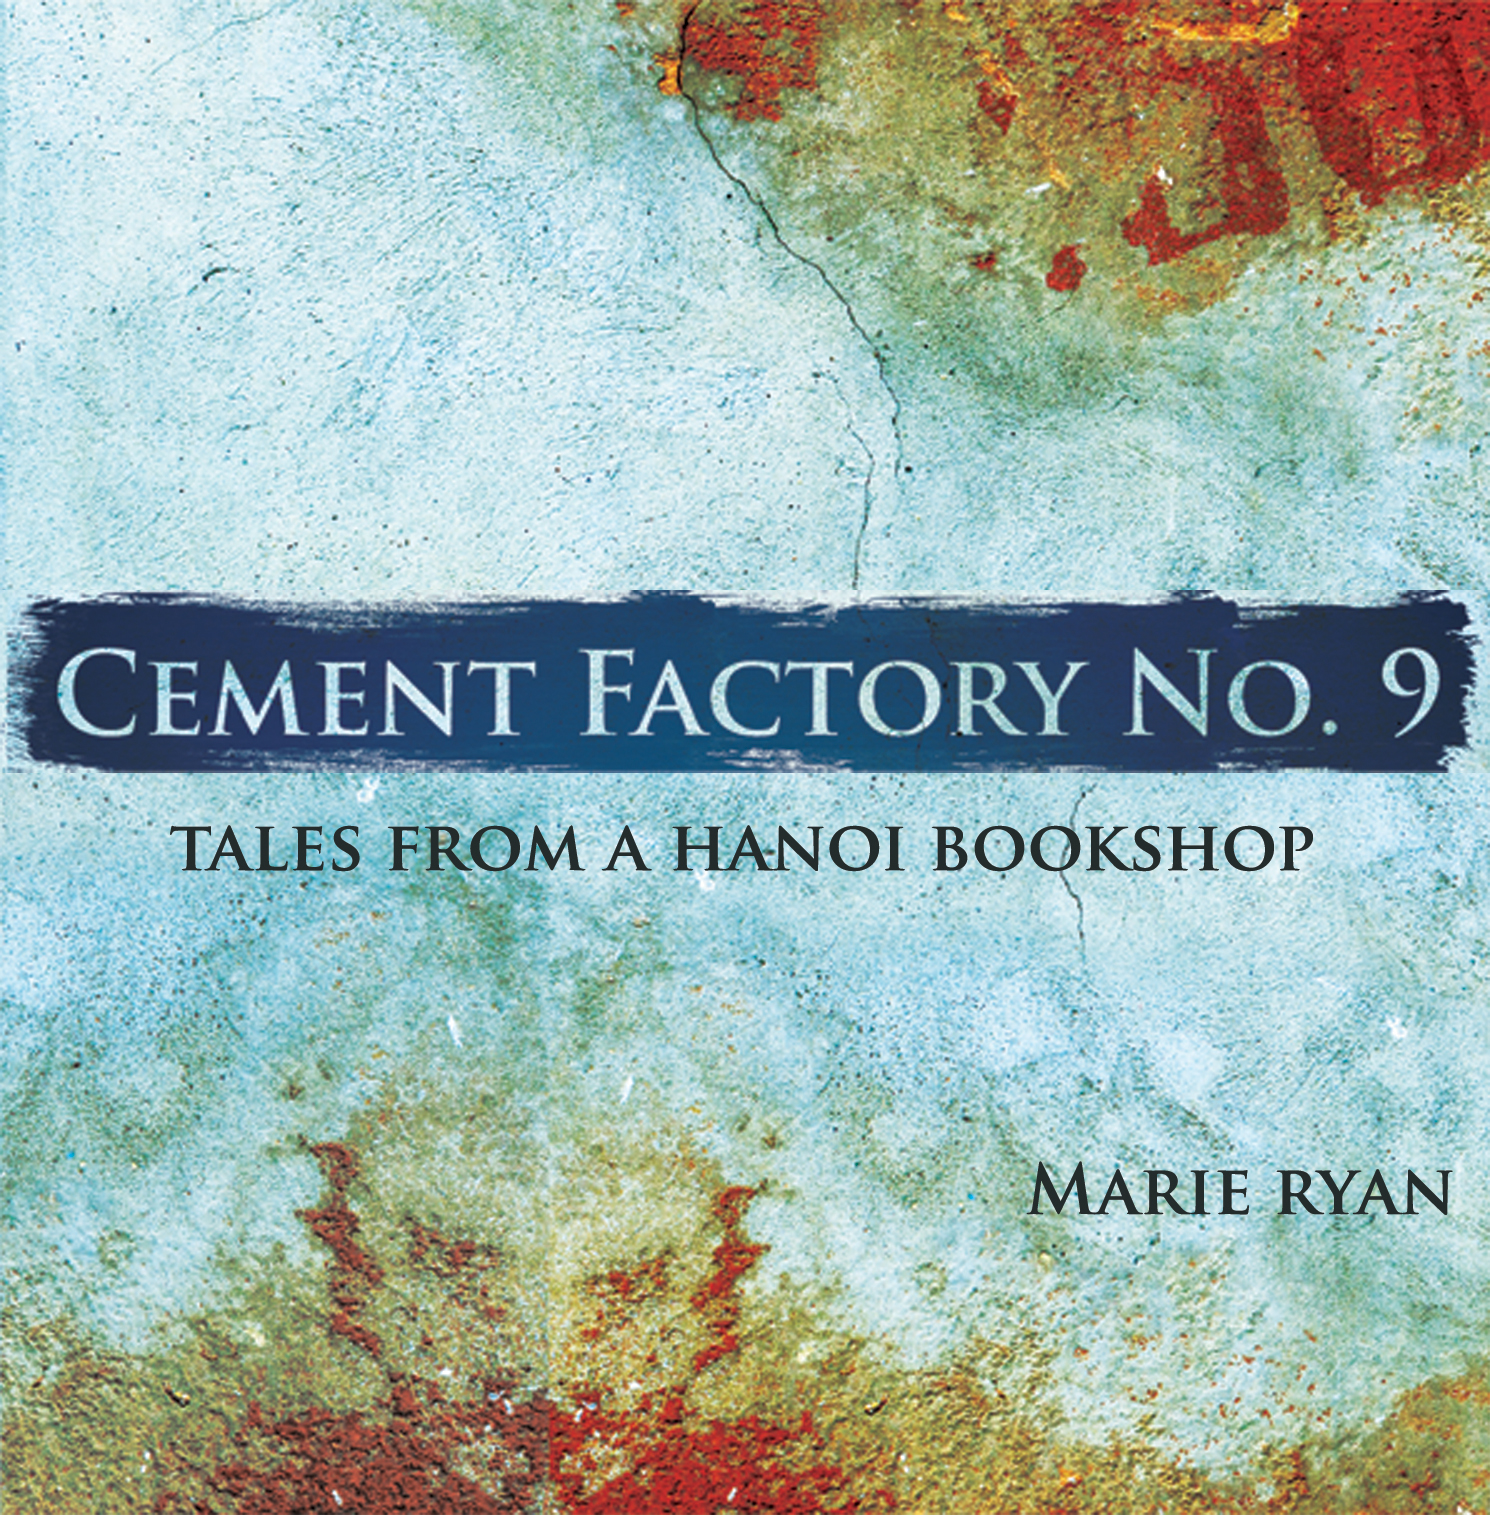 Cement Factory No.9 - Tales from a Hanoi Bookshop